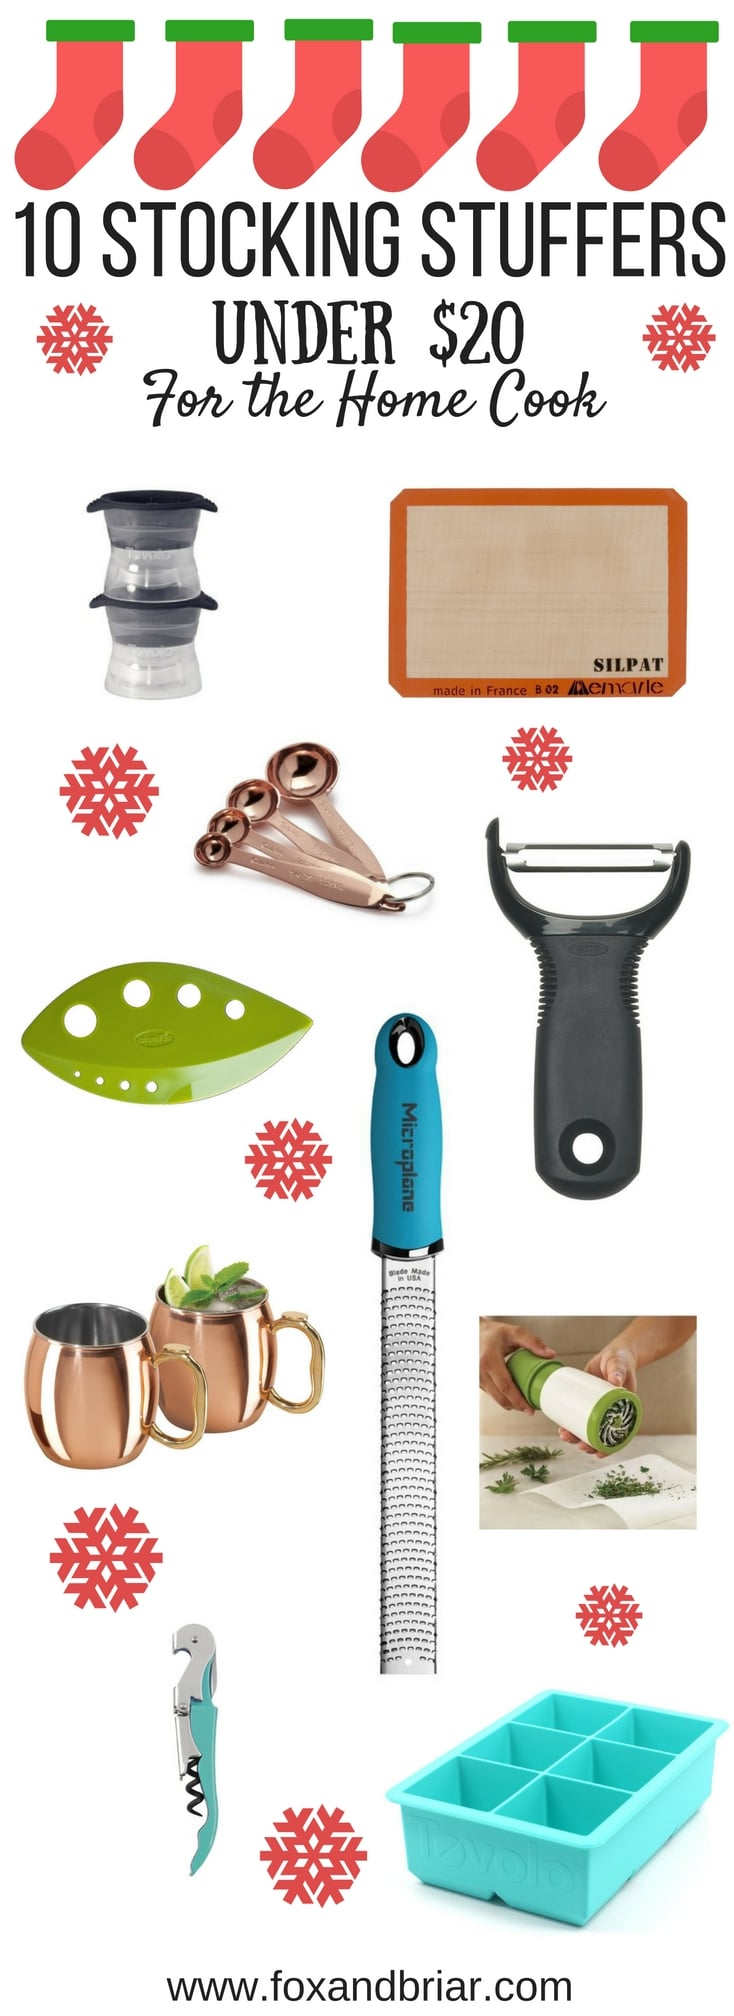 Looking for some stocking stuffers or inexpensive gifts for the home cook in your life? I've put together a list of 10 items under twenty dollars that any home cook would love!